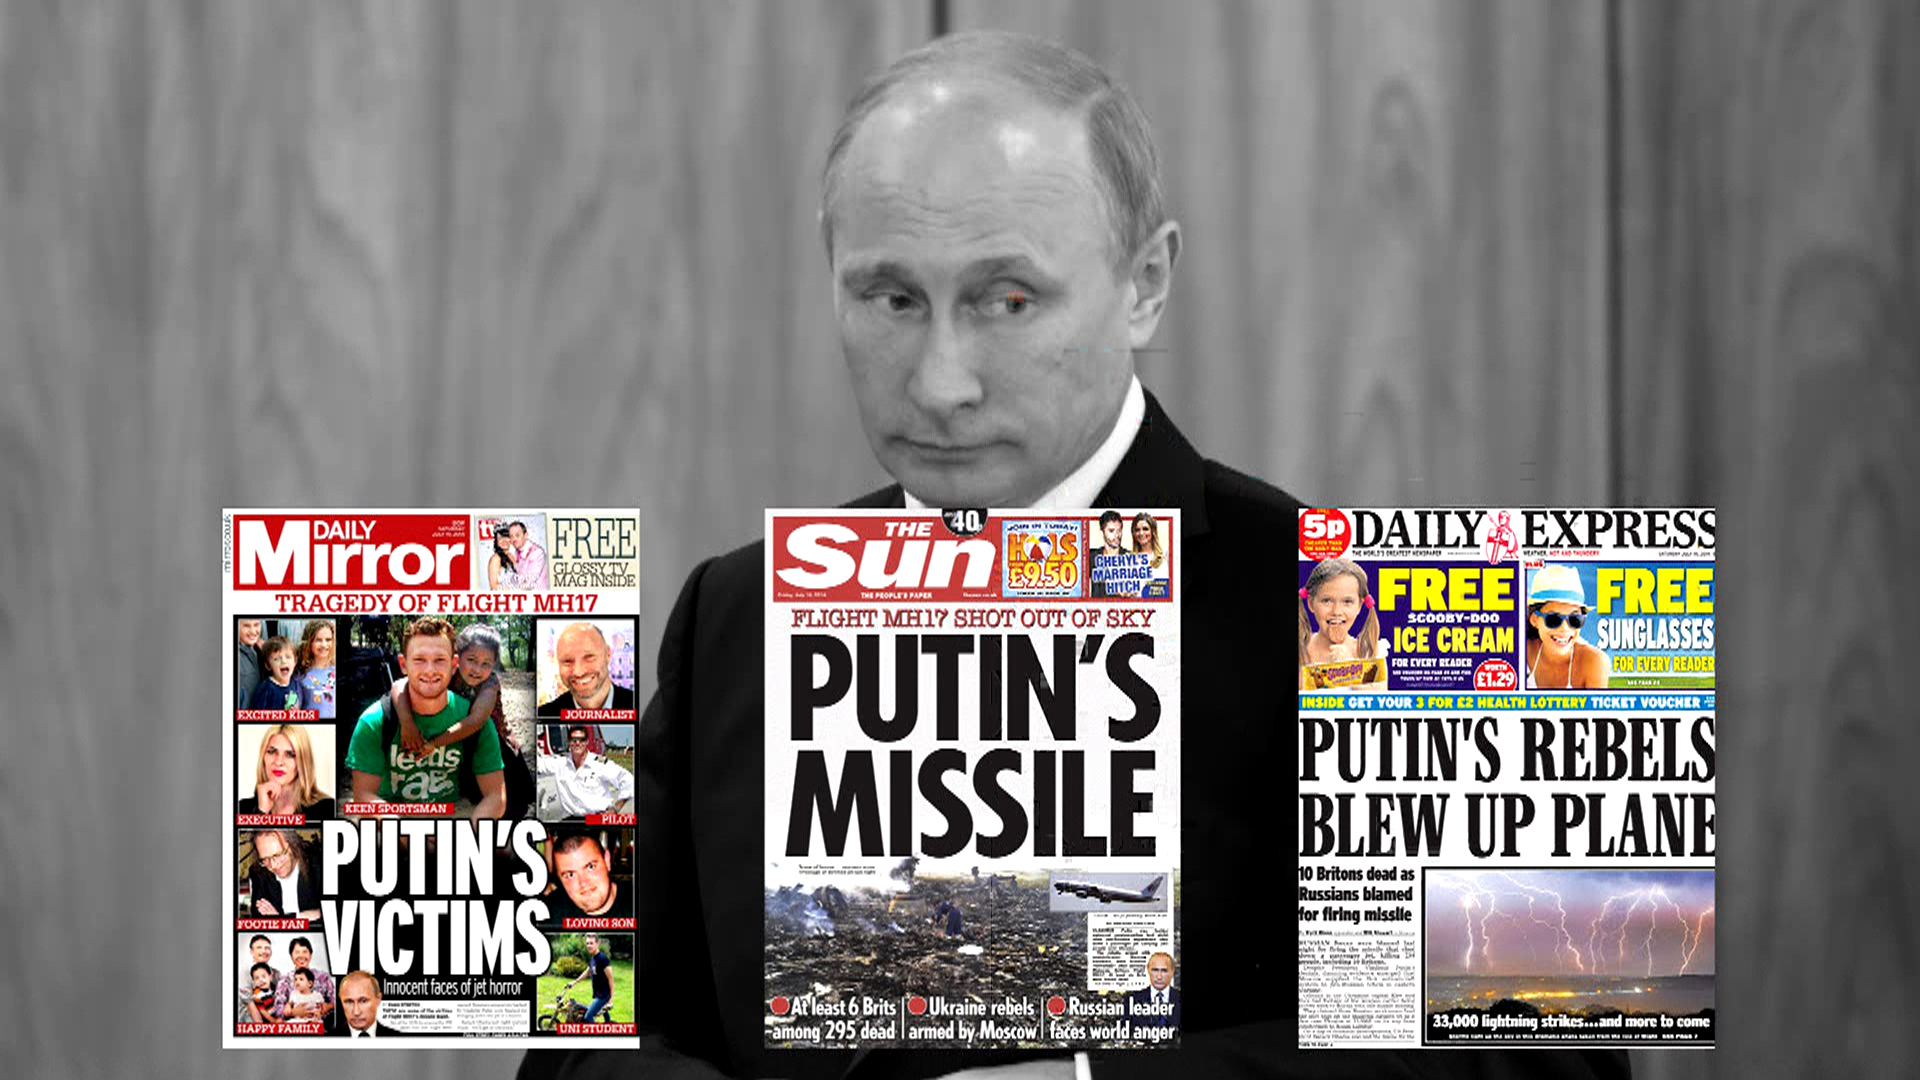 Russian Media Play Down Putin Role in Jet's Downing